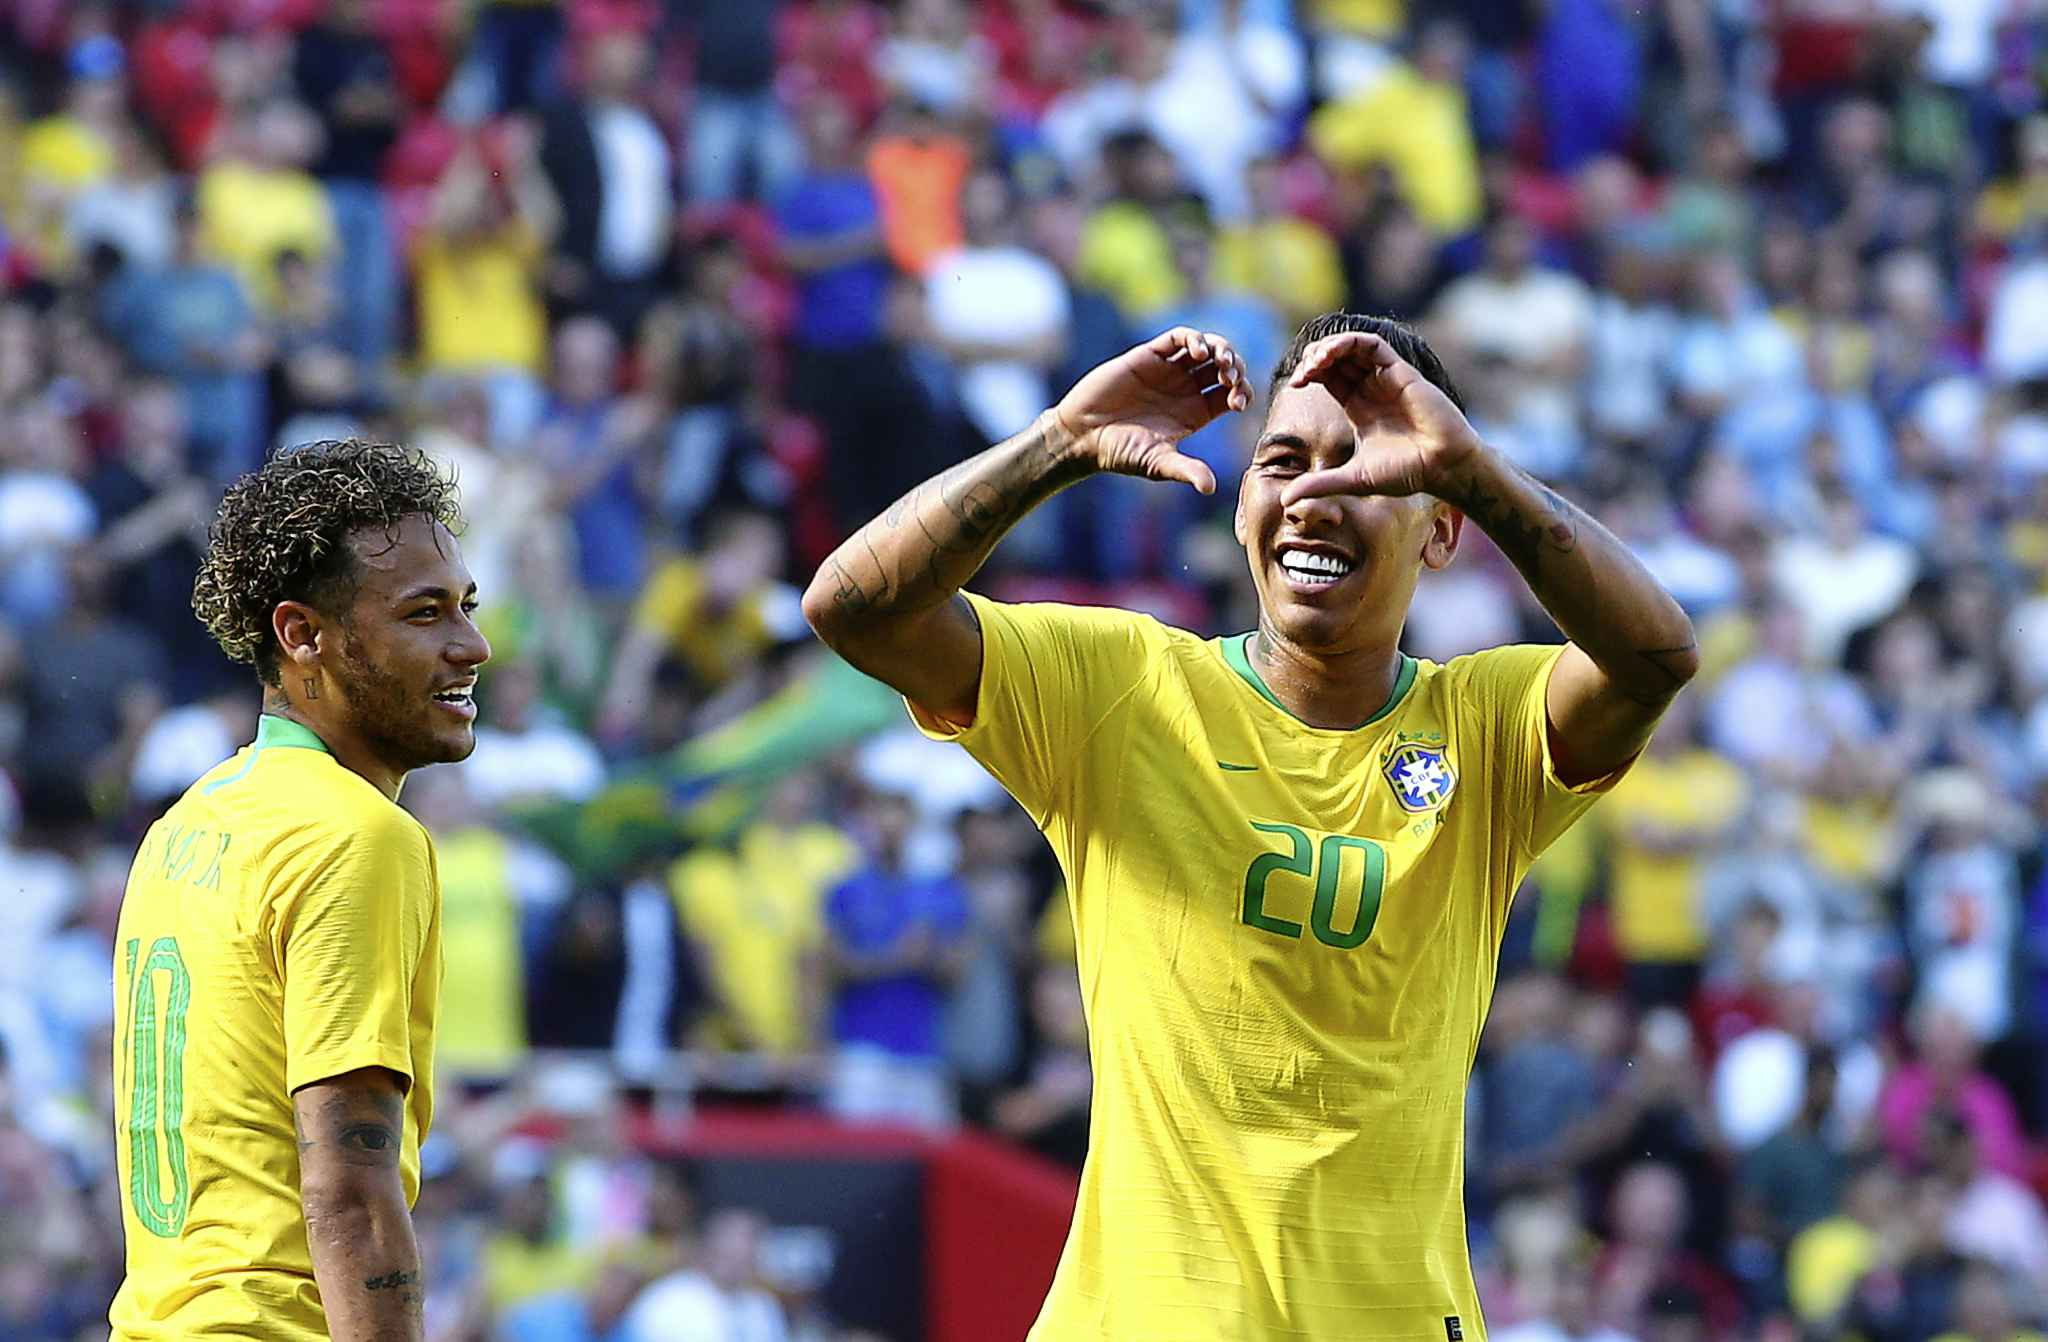 When Neymar, left, scored against Croatia, he took over third-place on his country's all-time list. (Dave Thompson / Associated Press files)